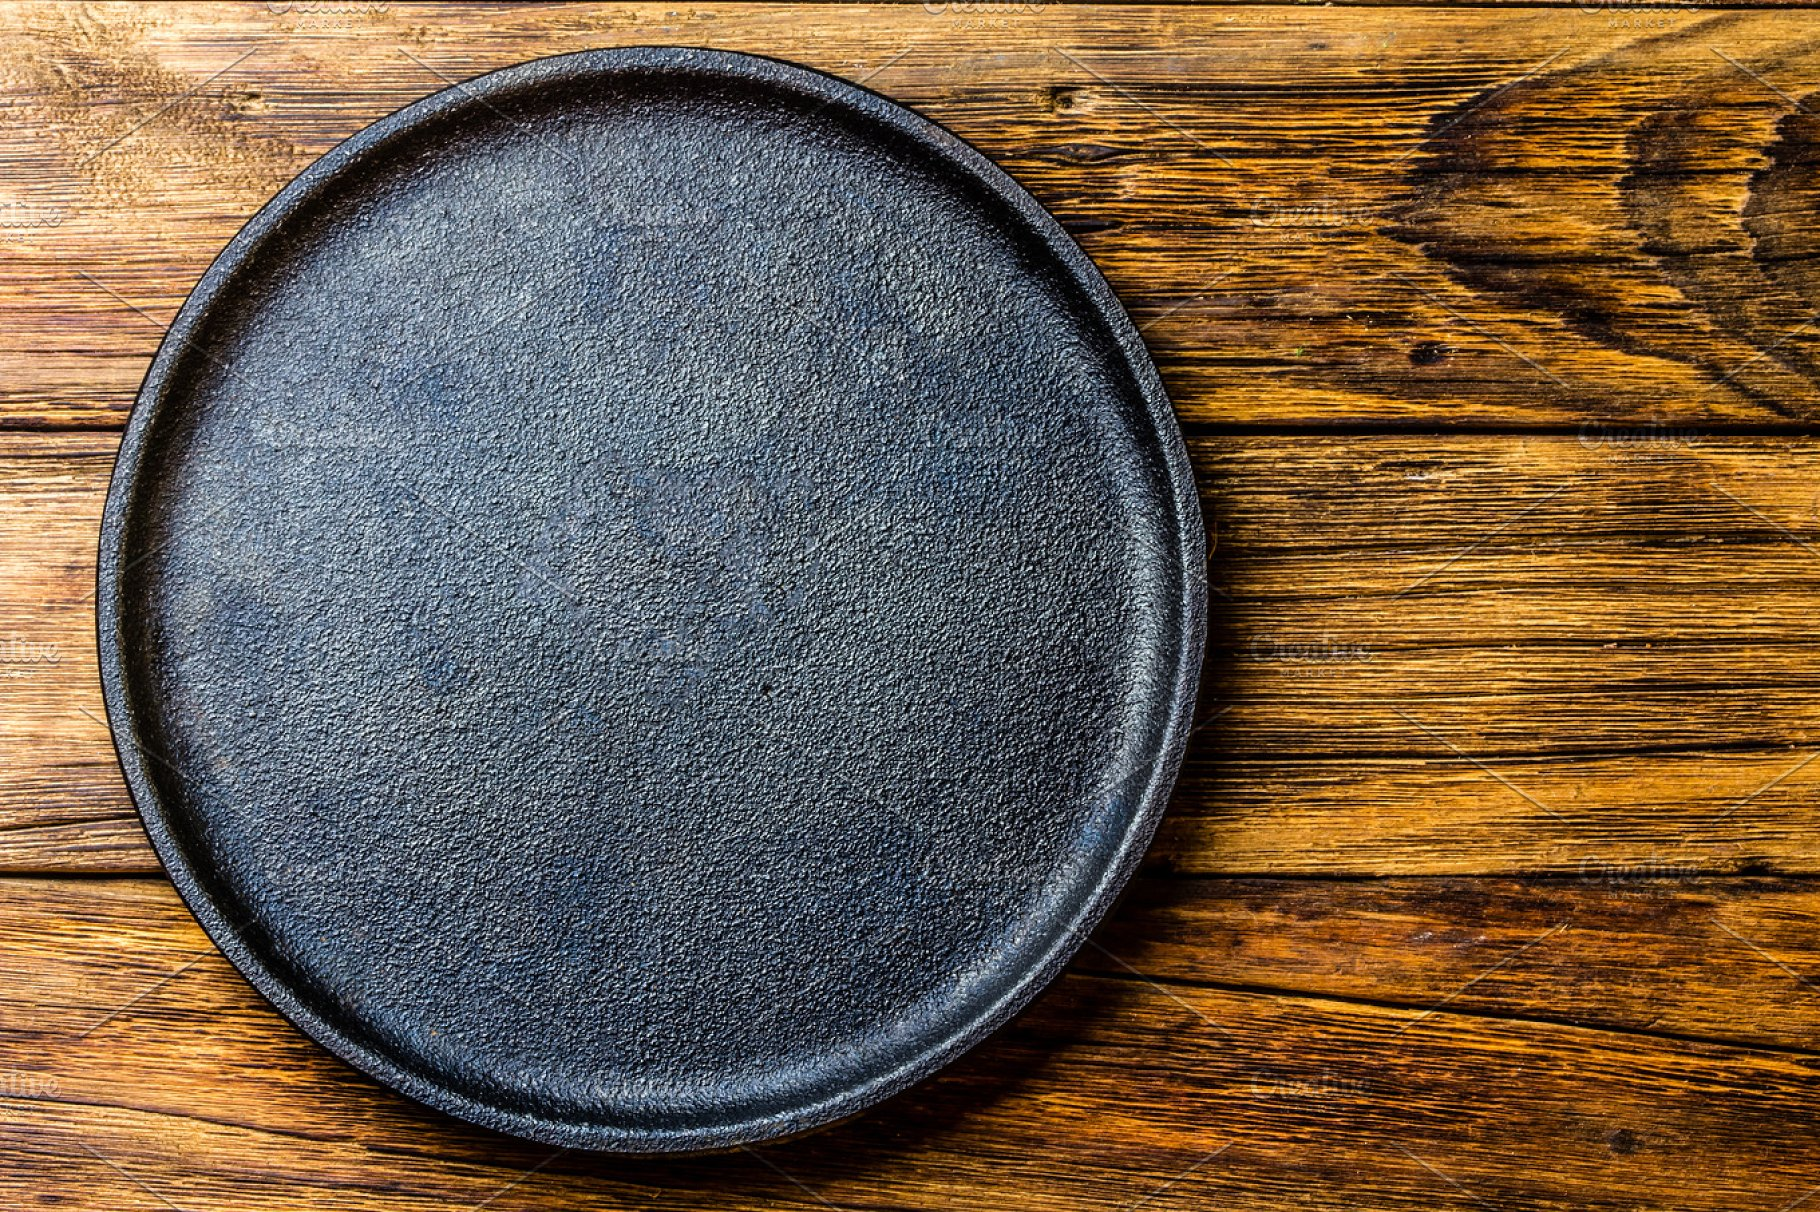 Empty Rustic Black Cast Iron Plate Over Old Wooden Background